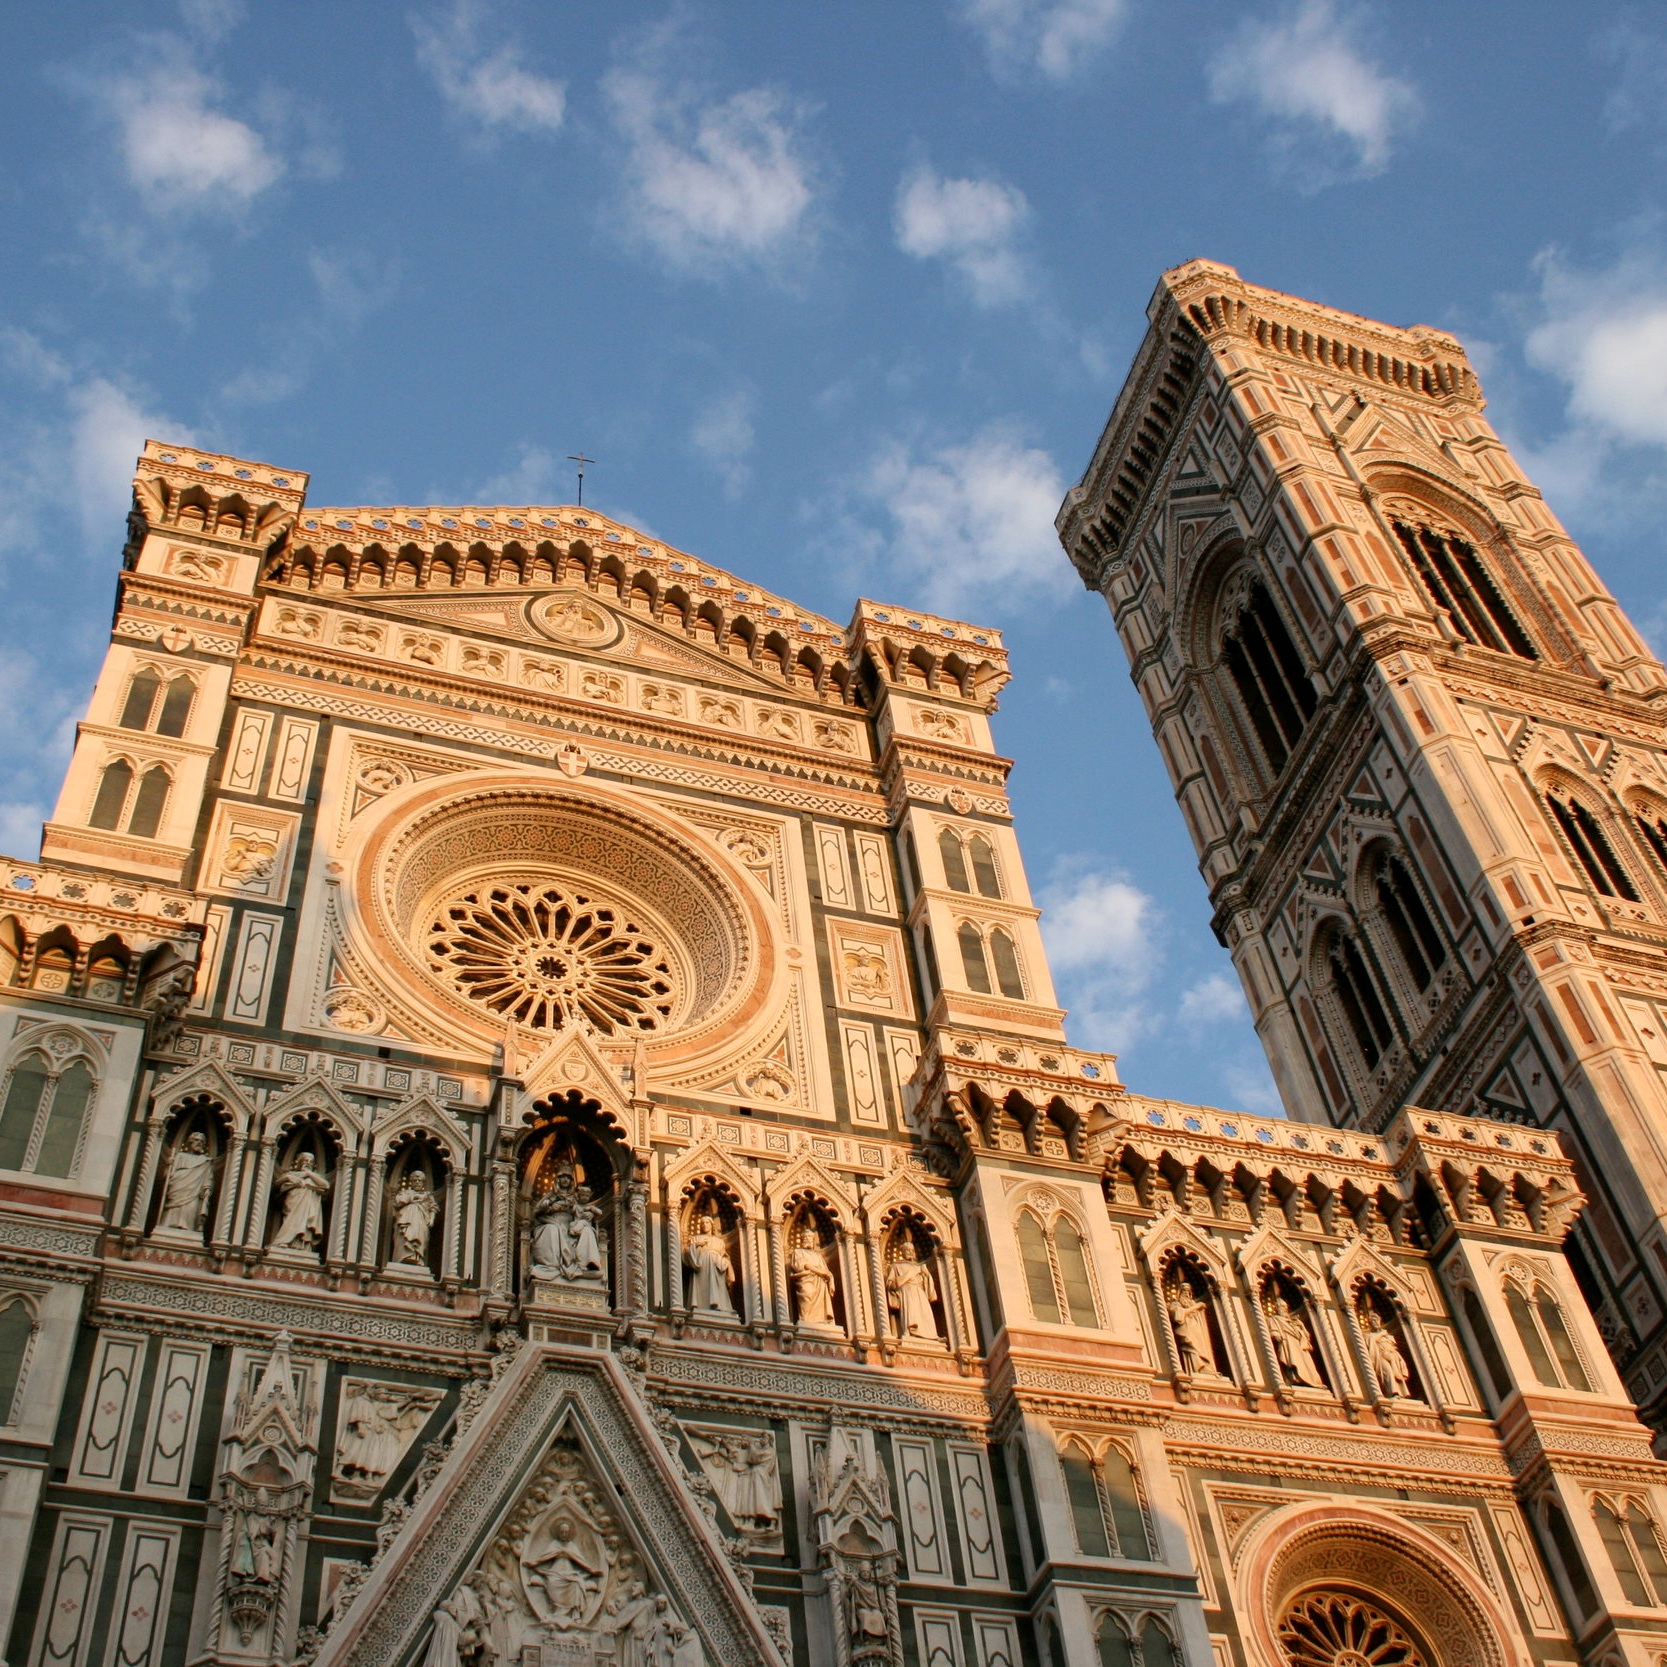 Santa Maria dell Fiore in Florence — commonly known as the Duomo